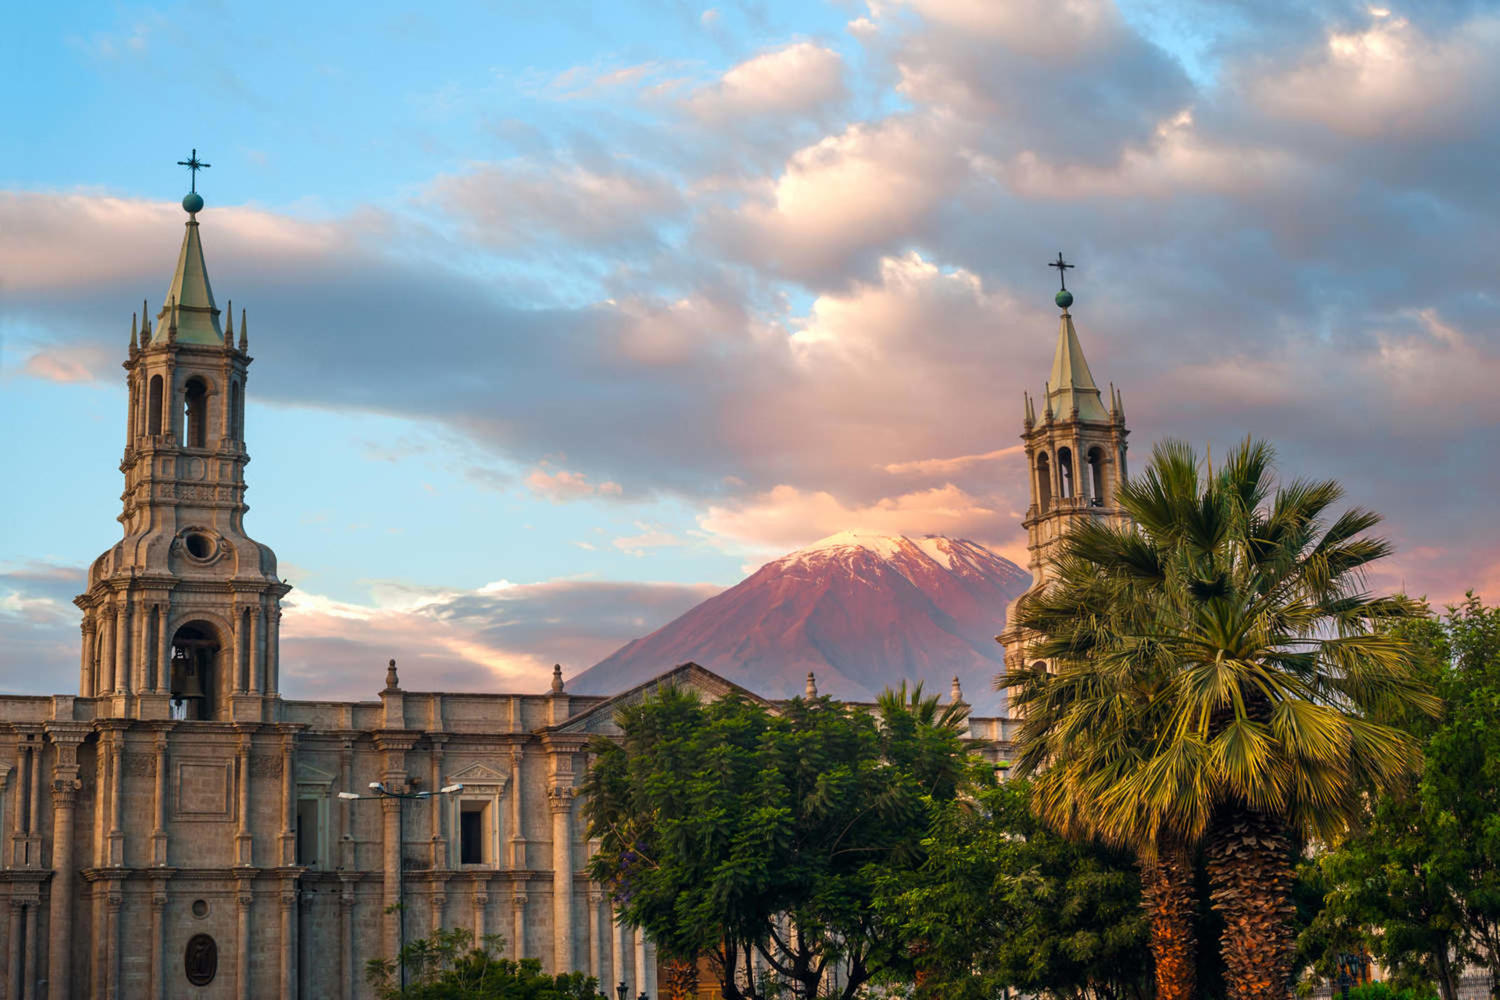 peru-arequipa-volcano-el-misti-overlooks-the-city-arequipa